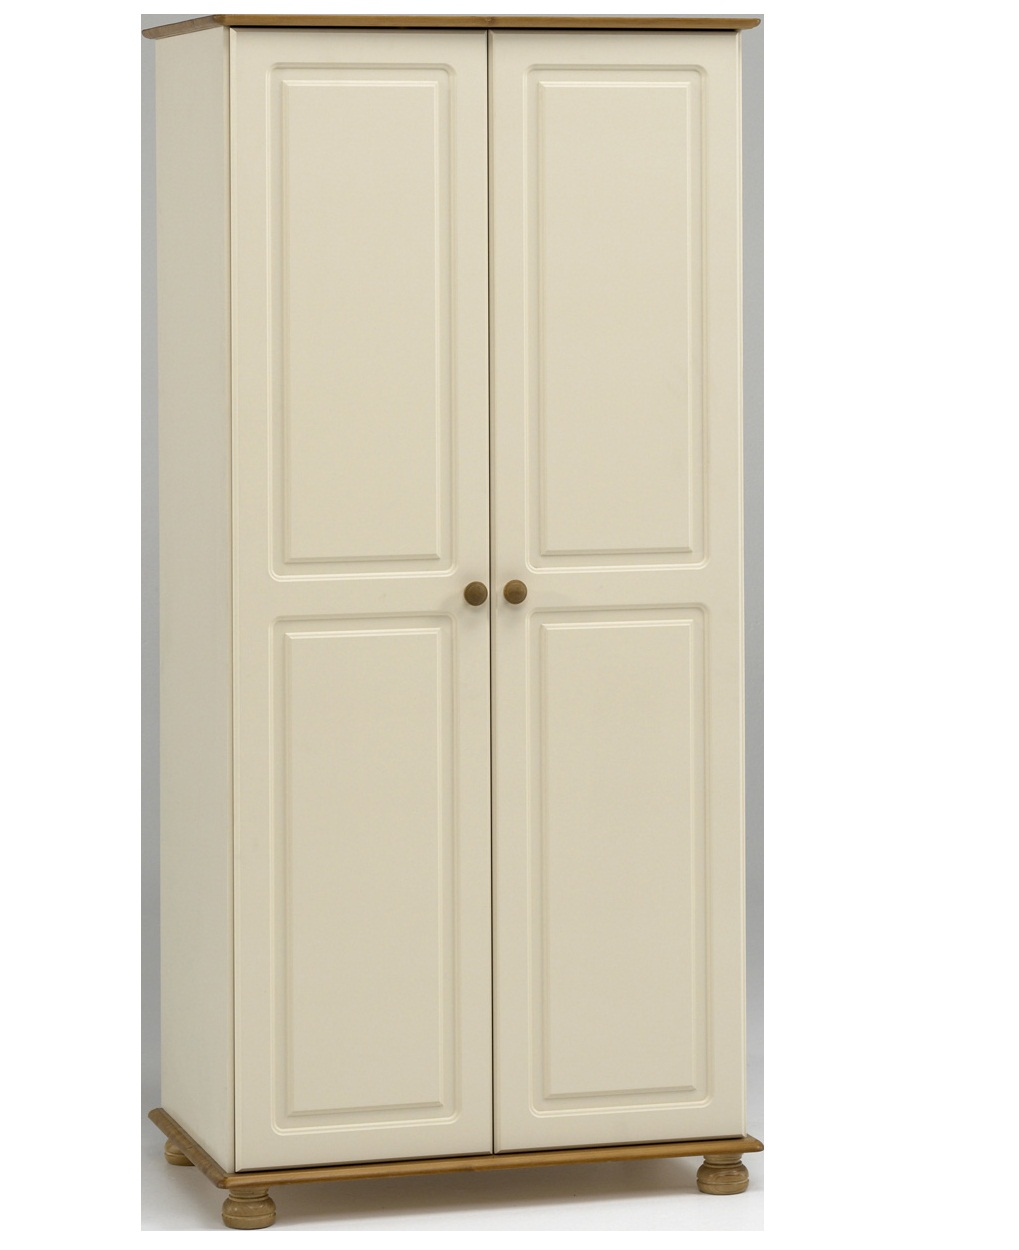 Furniturekraze Ltd Richmond Cream Amp Pine Wardrobe